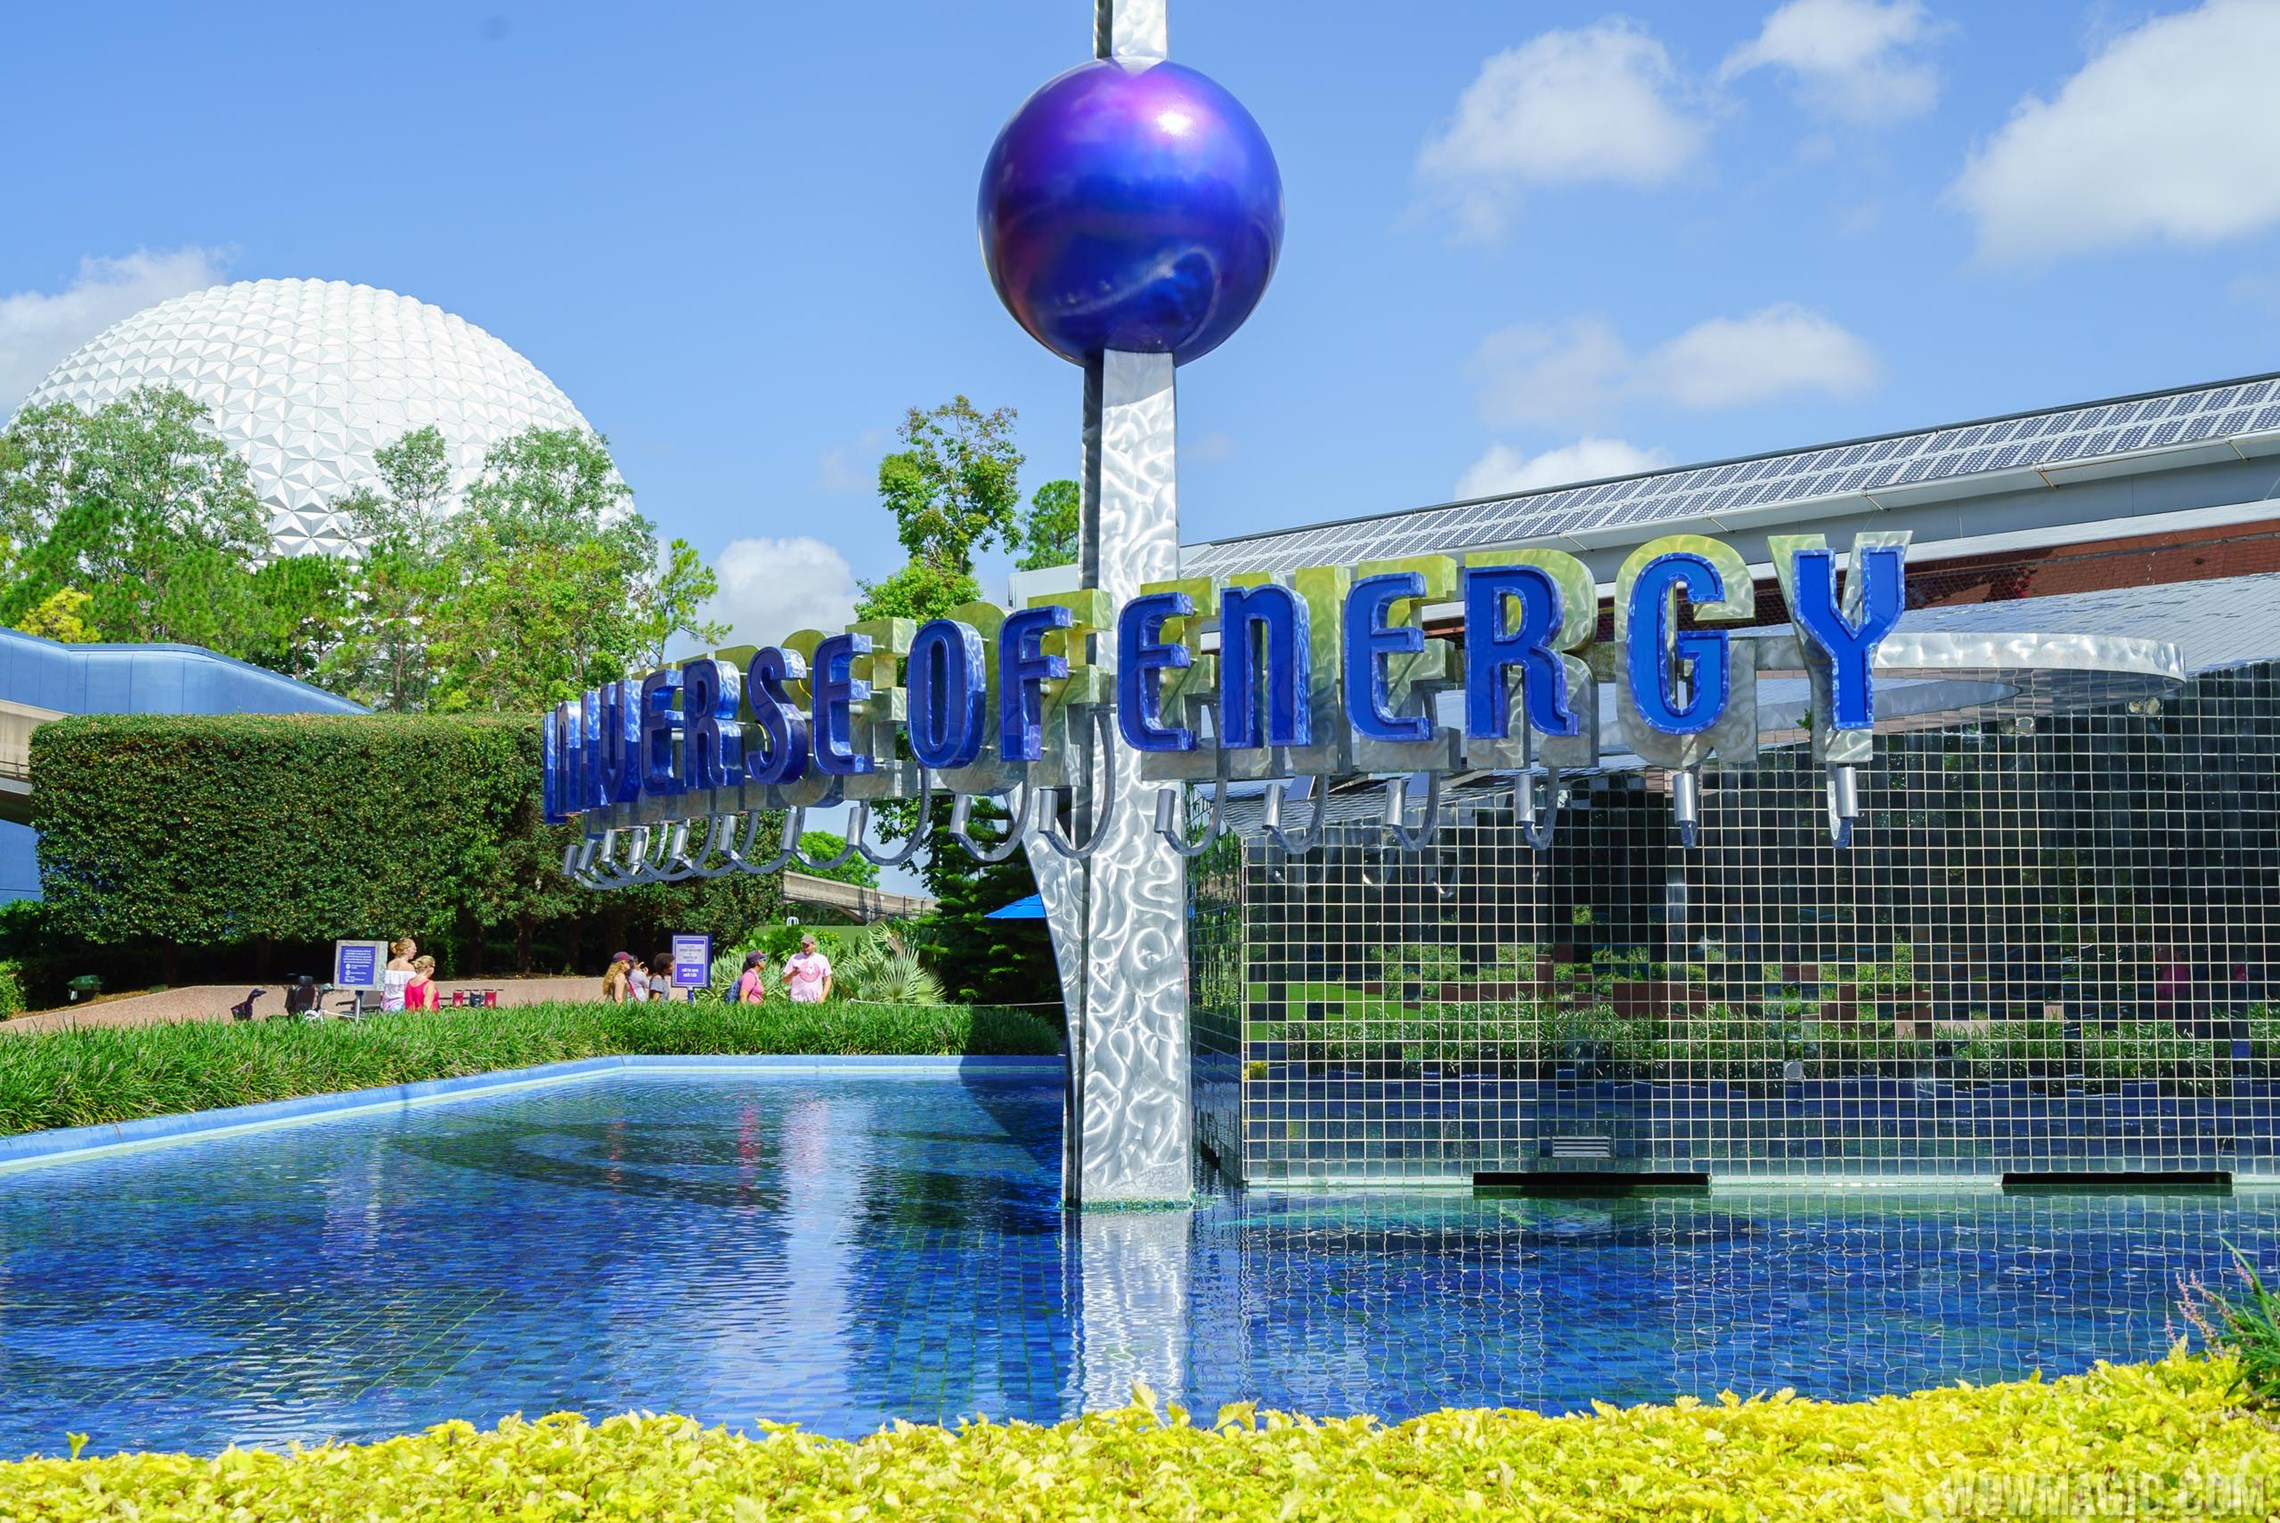 Universe of Energy exterior